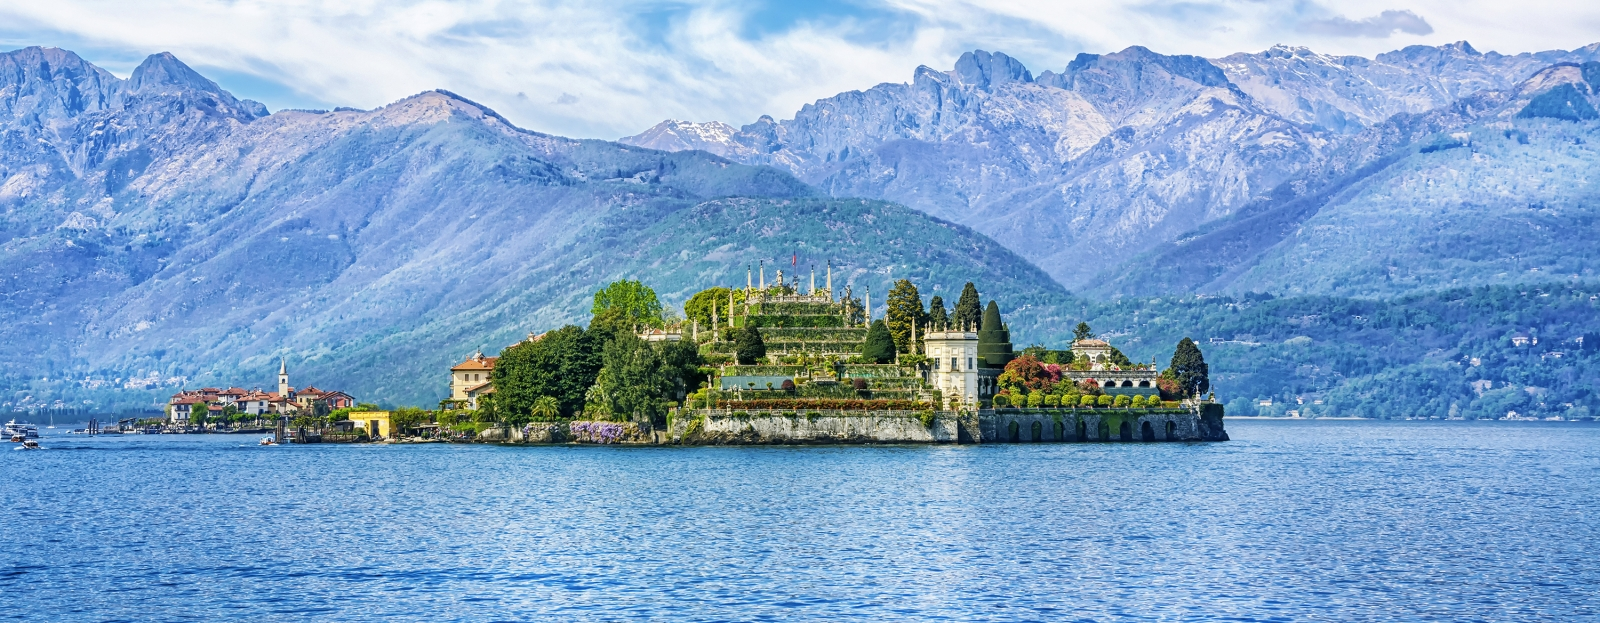 Splendors of the Italian Lakes